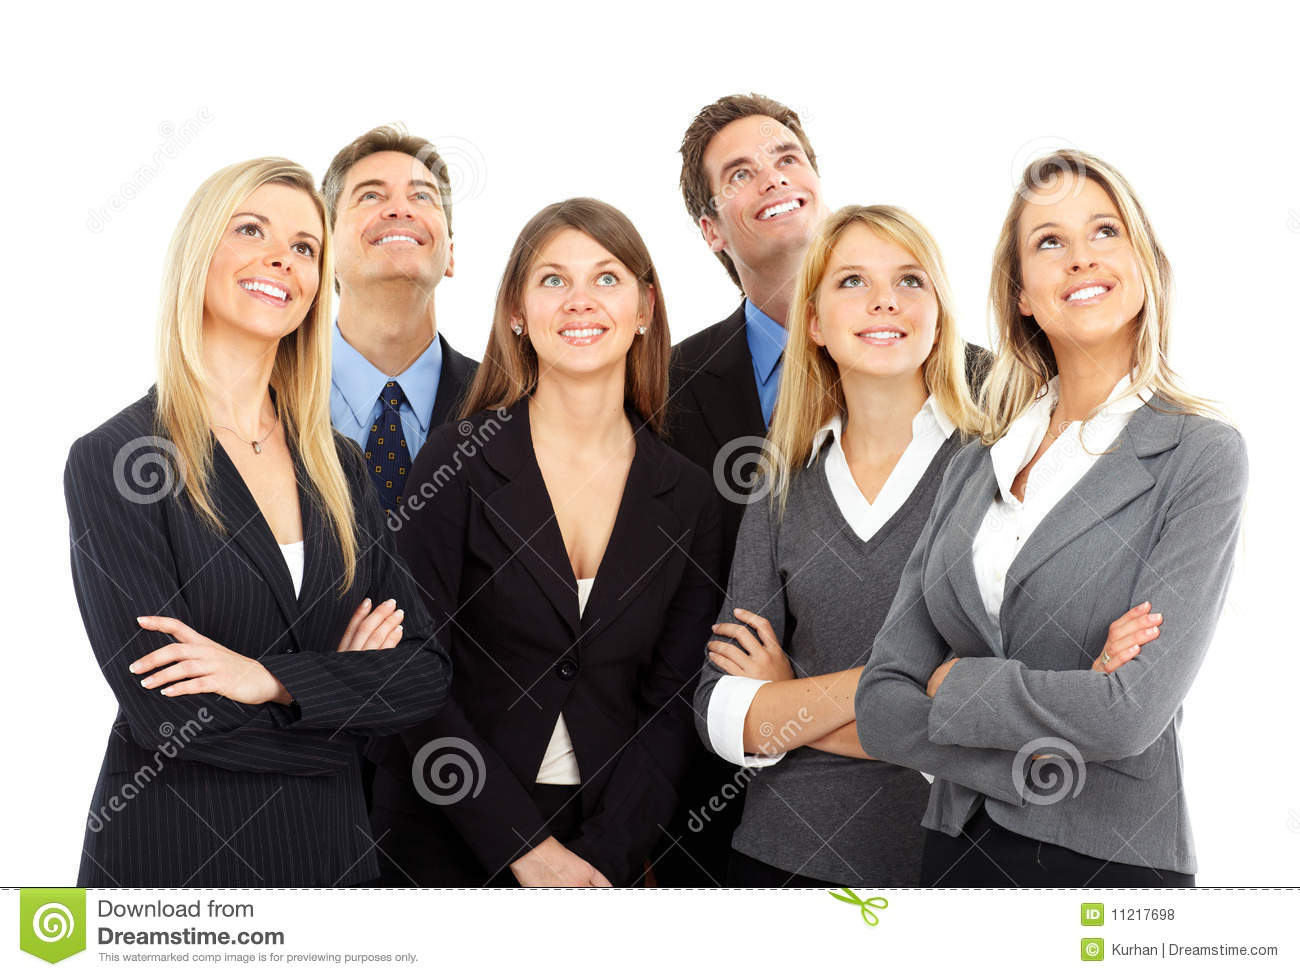 Business People Royalty Free Stock Photos - Image: 11217698: dreamstime.com/royalty-free-stock-photos-business-people-image11217698